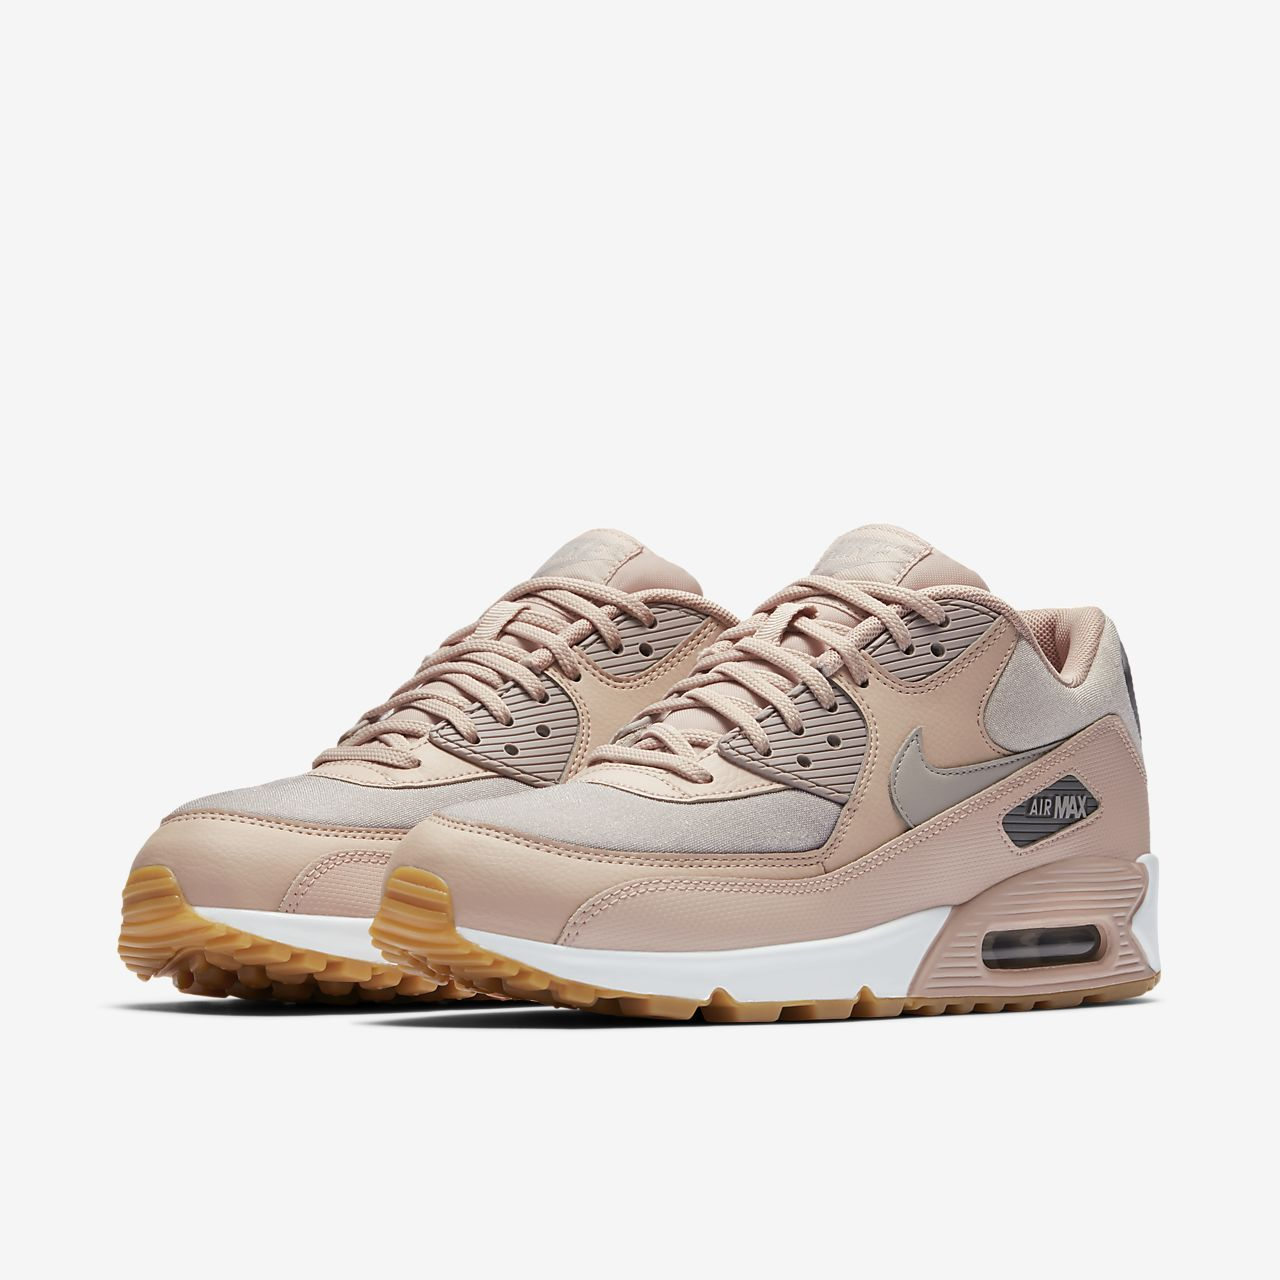 Nike Air Max 90 Women S Shoe Nike Air Max 90 Women Nike Air Max For Women Nike Air Max 90